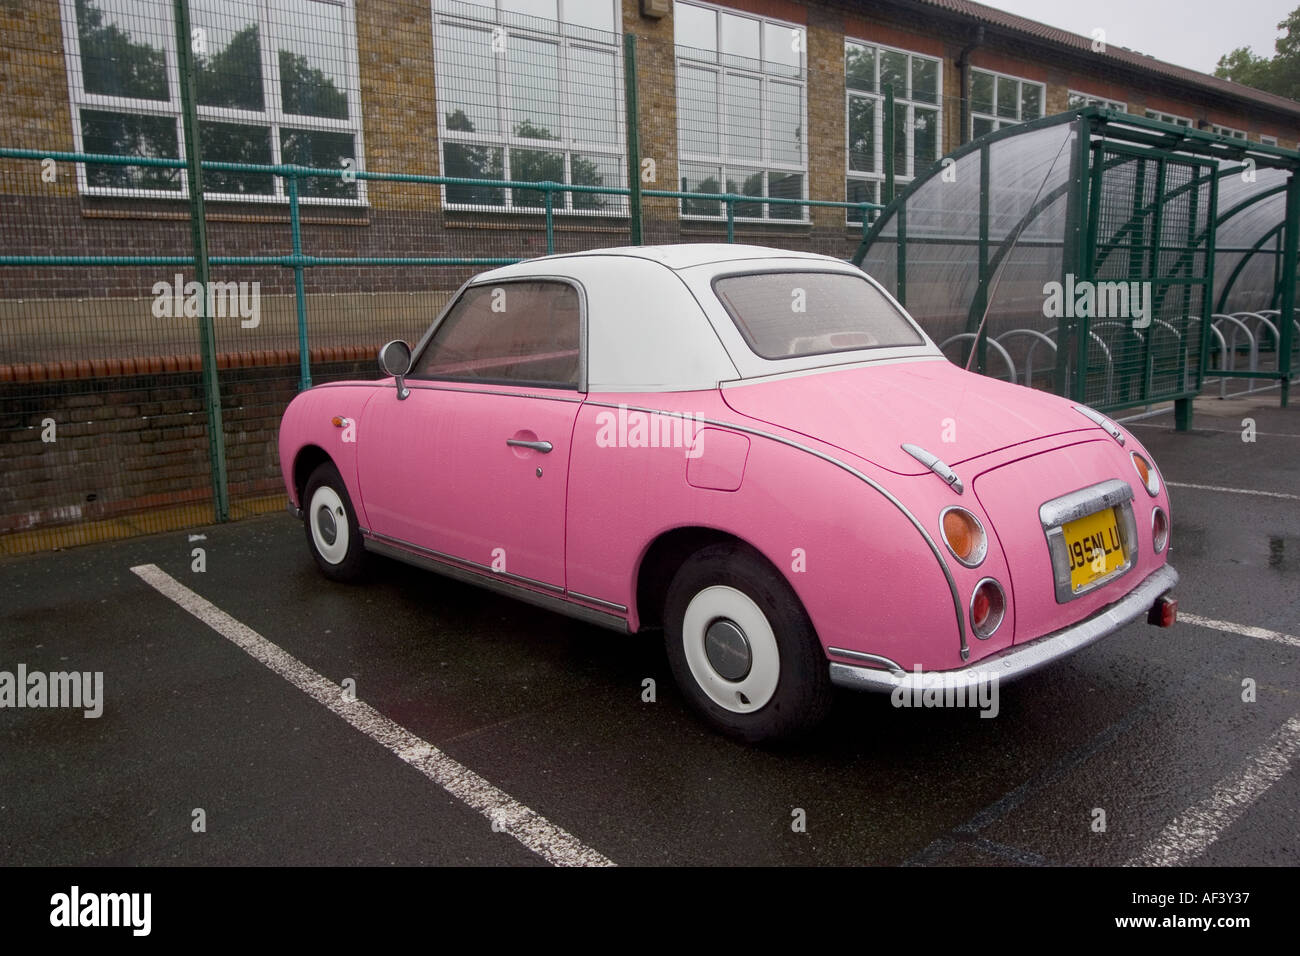 Pink and white two tone Nissan Figaro classic cult car Stock Photo